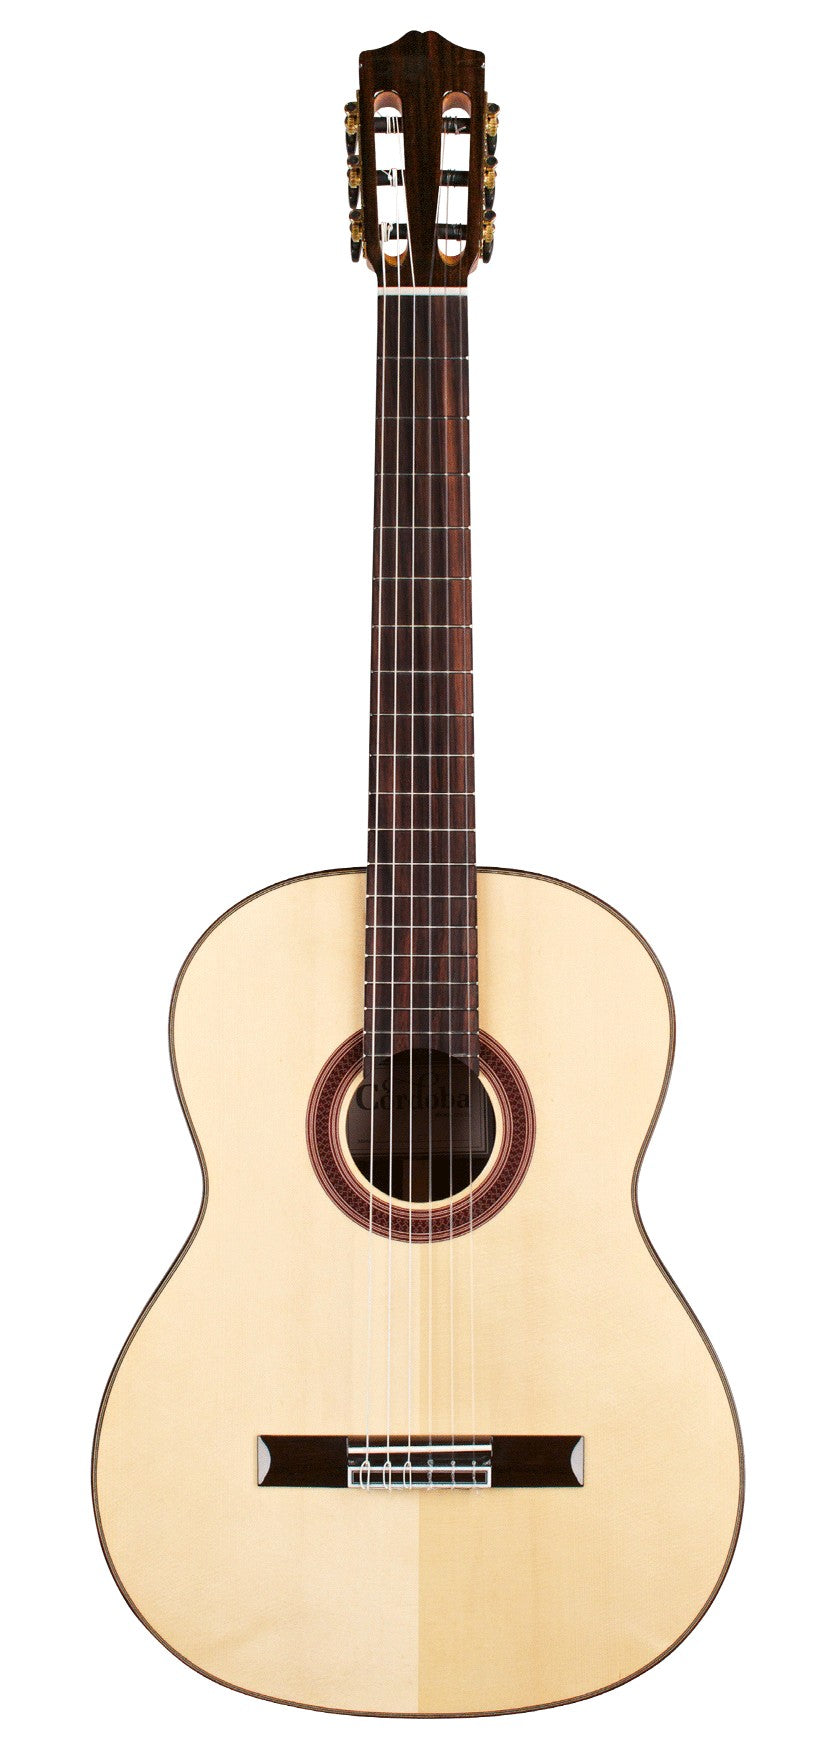 Cordoba C7 SP Solid Spruce Top Nylon String Acoustic Guitar